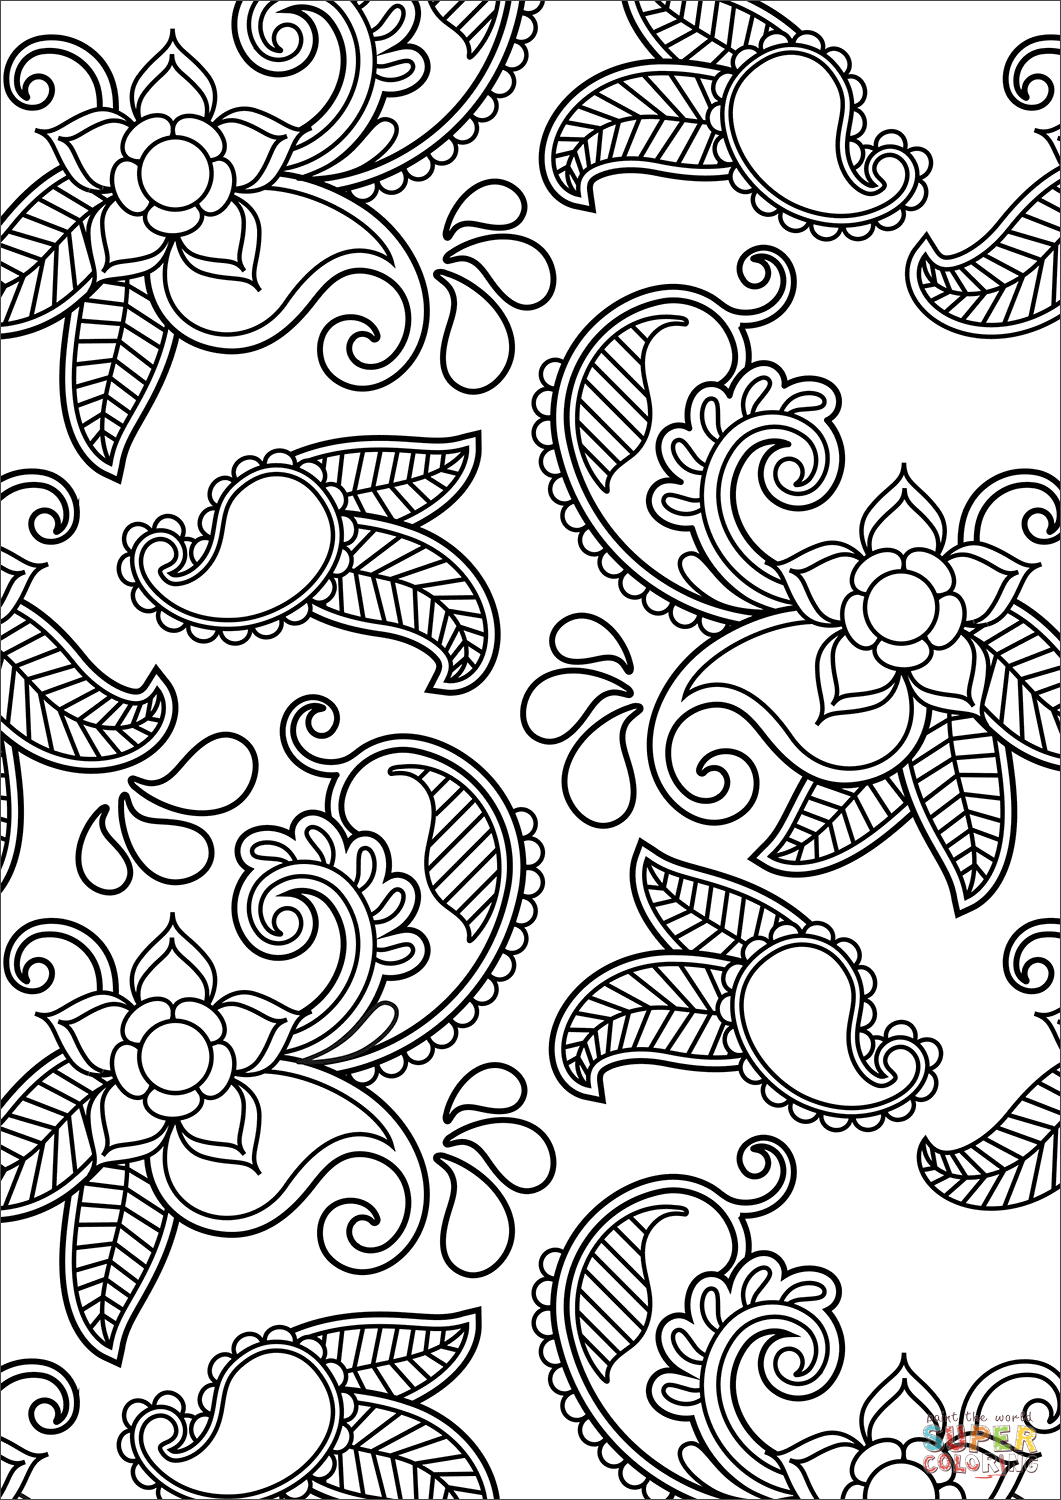 coloring designs free paisley pattern coloring page free printable coloring pages coloring free designs